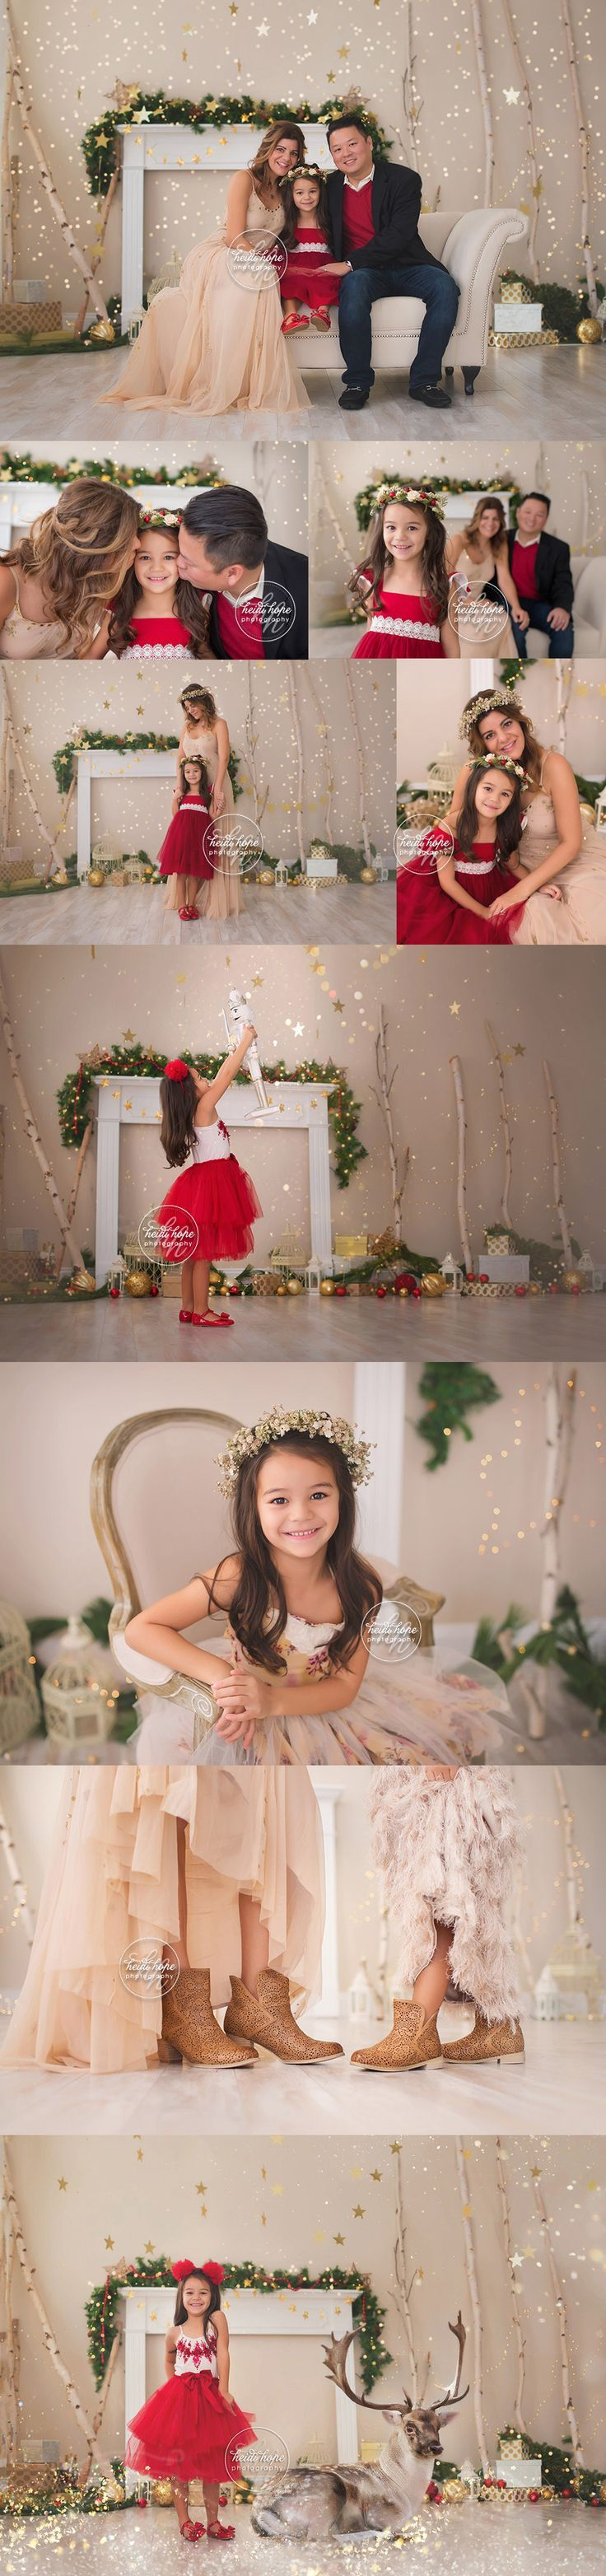 A sneak peek of the L family's magical Holiday portrait session!   Heidi Hope Photography  Studio portrait session Christmas 2016